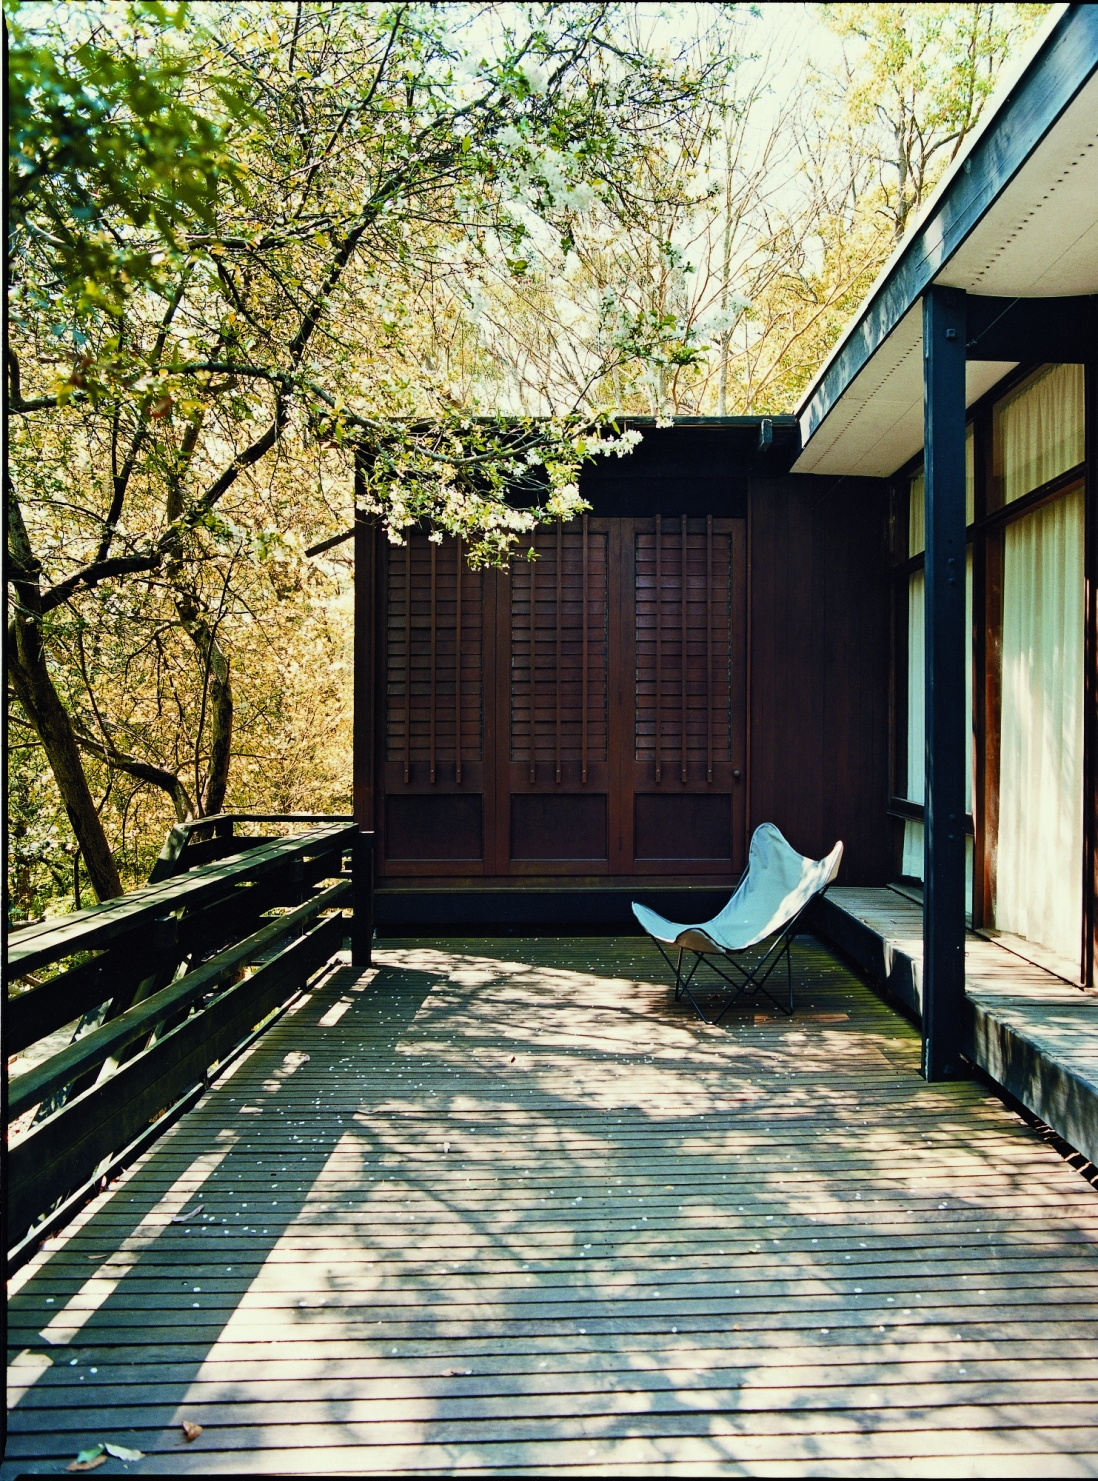 This is a photograph of a long timber deck with a timber slatted screen at one end. A 1950s style white chair is positioned at one end, and tree branches create dappled light.